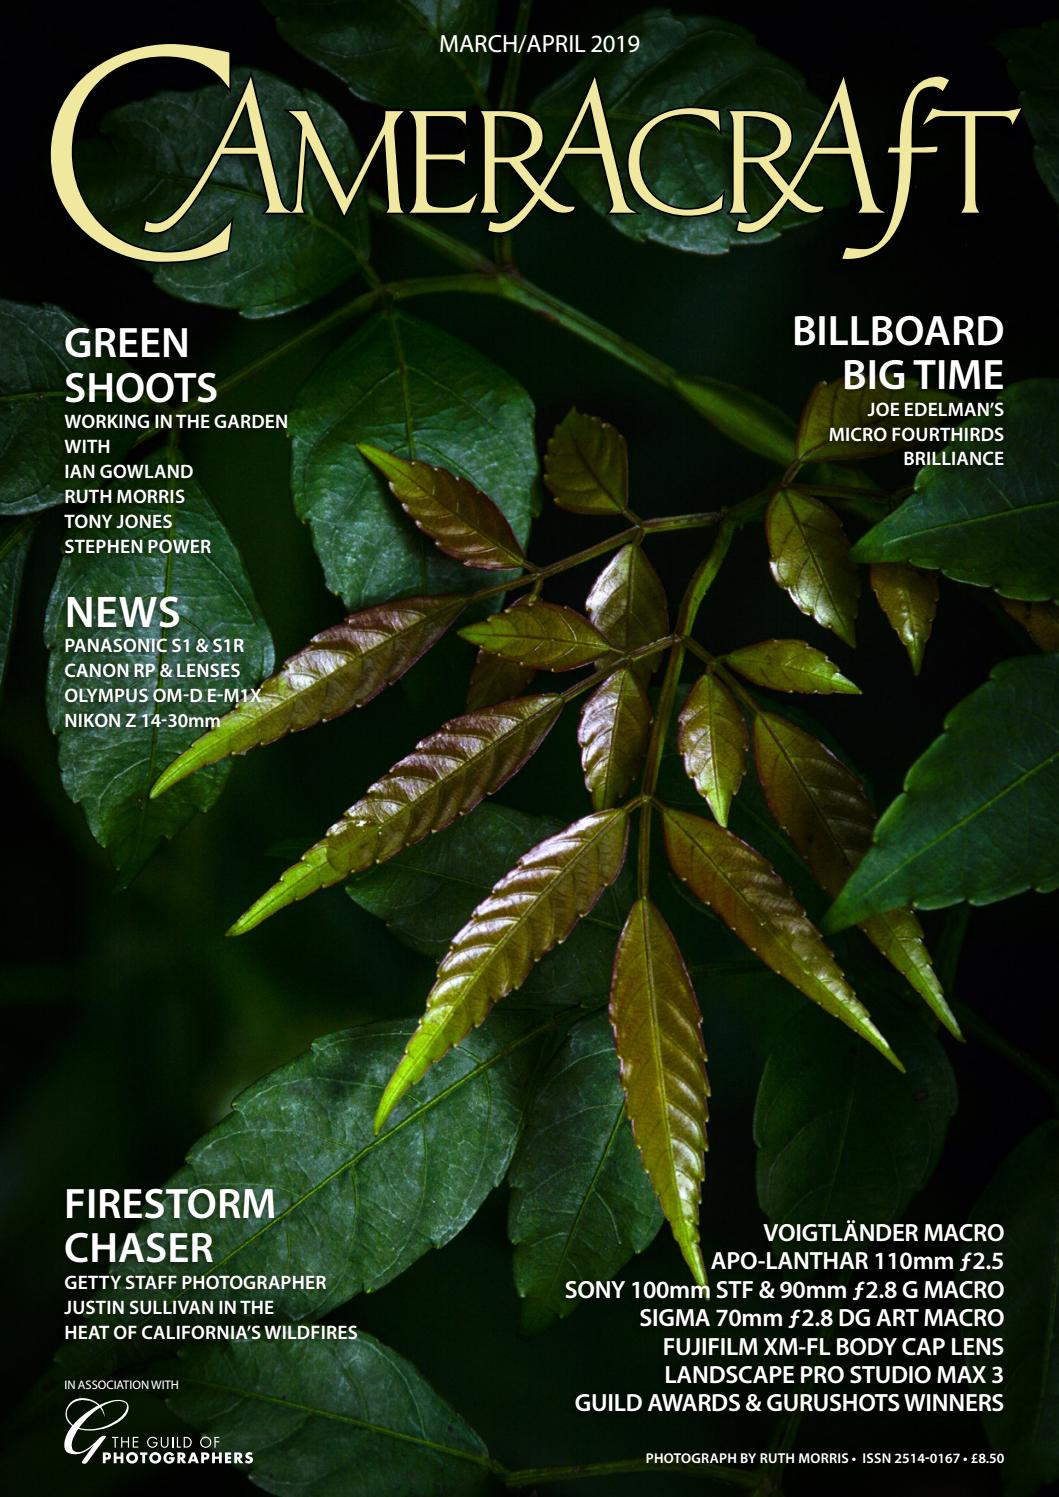 Cameracraft March/April 2019 by Icon Publications Ltd - issuu